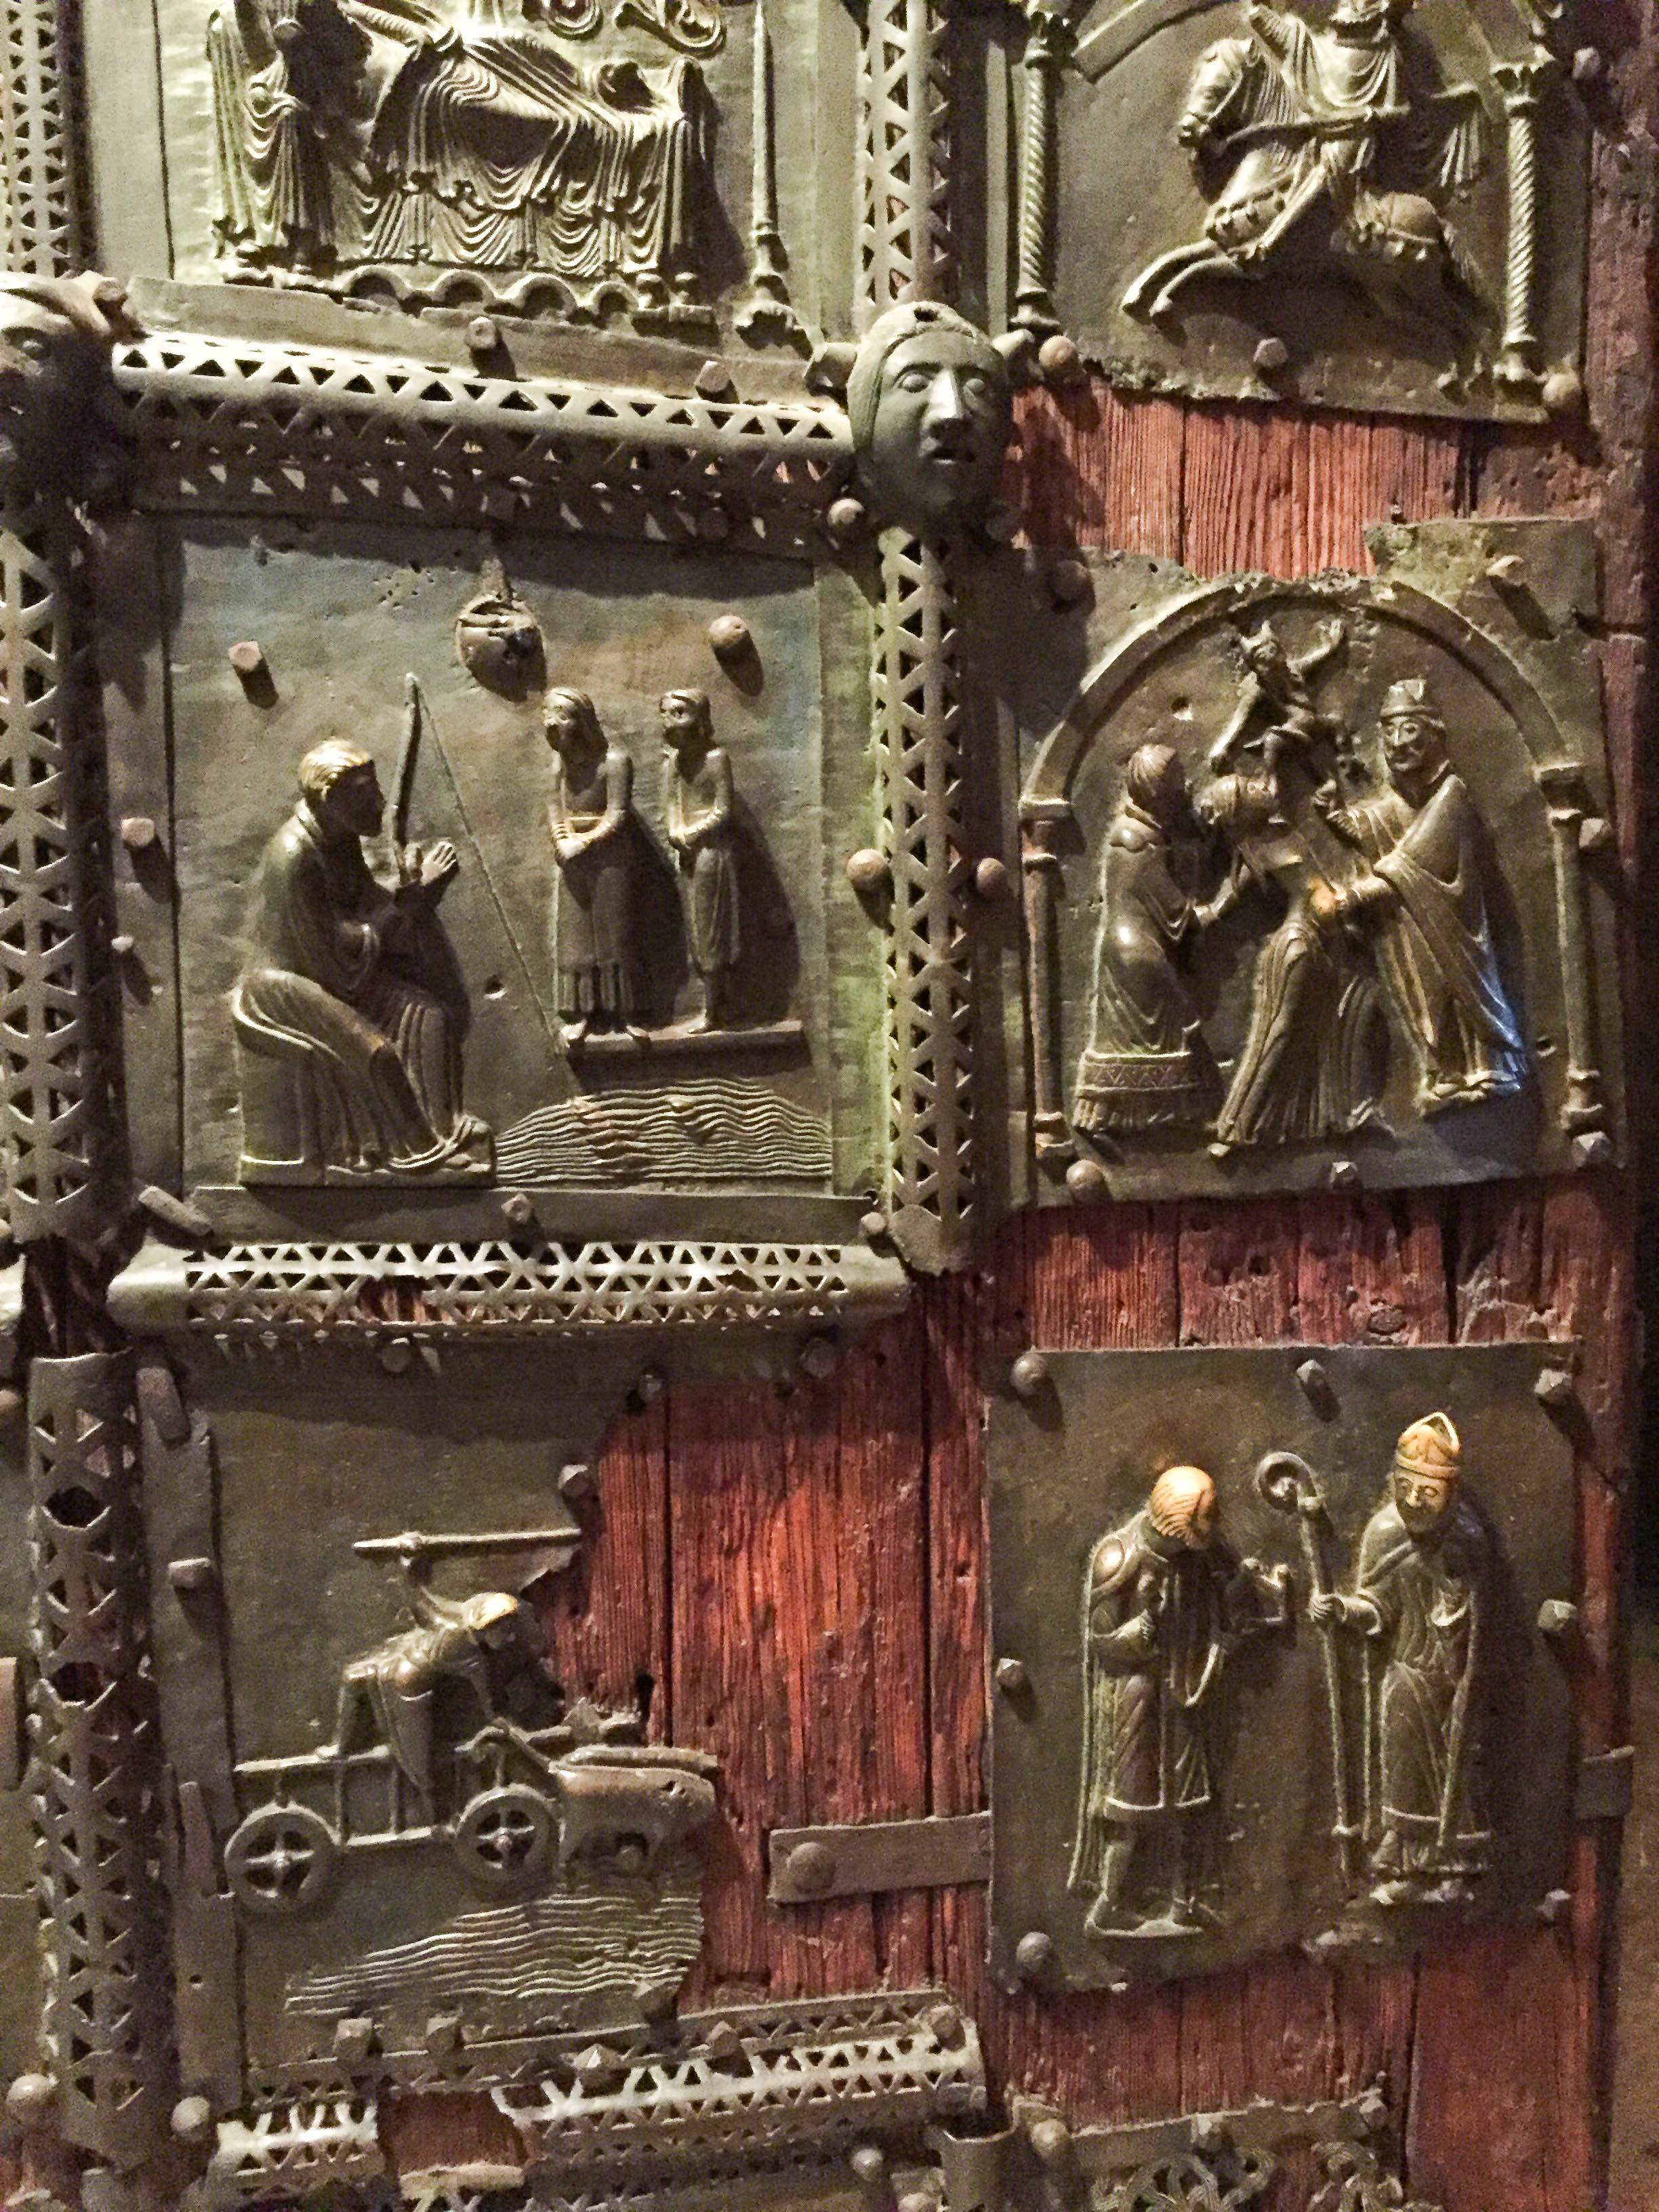 Bronze door in the Church of San Zeno in Verona